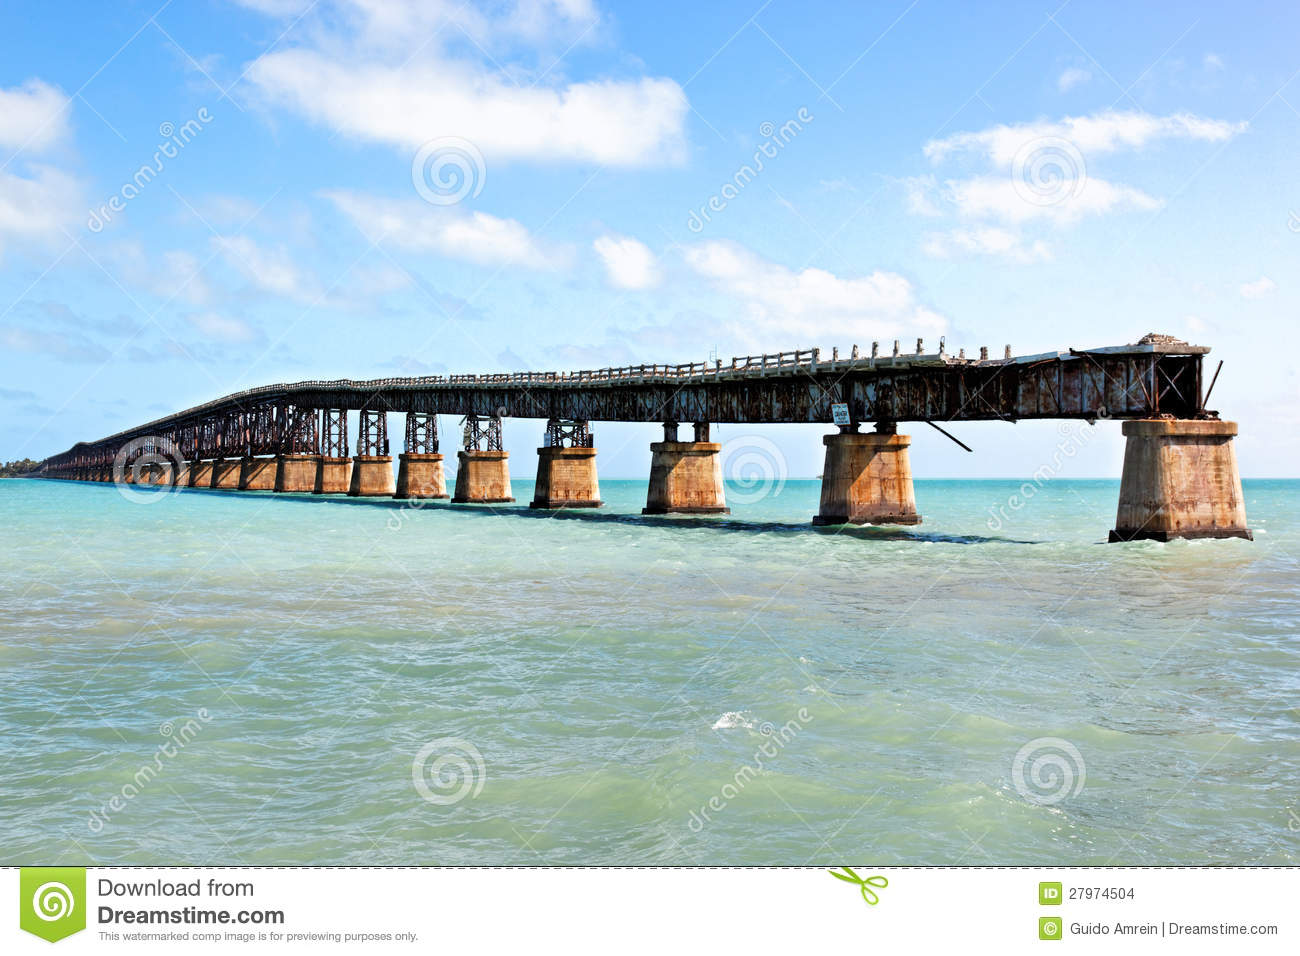 Tropical landscape south fla landscape - Old Railroad Bridge Florida Keys Stock Images Image